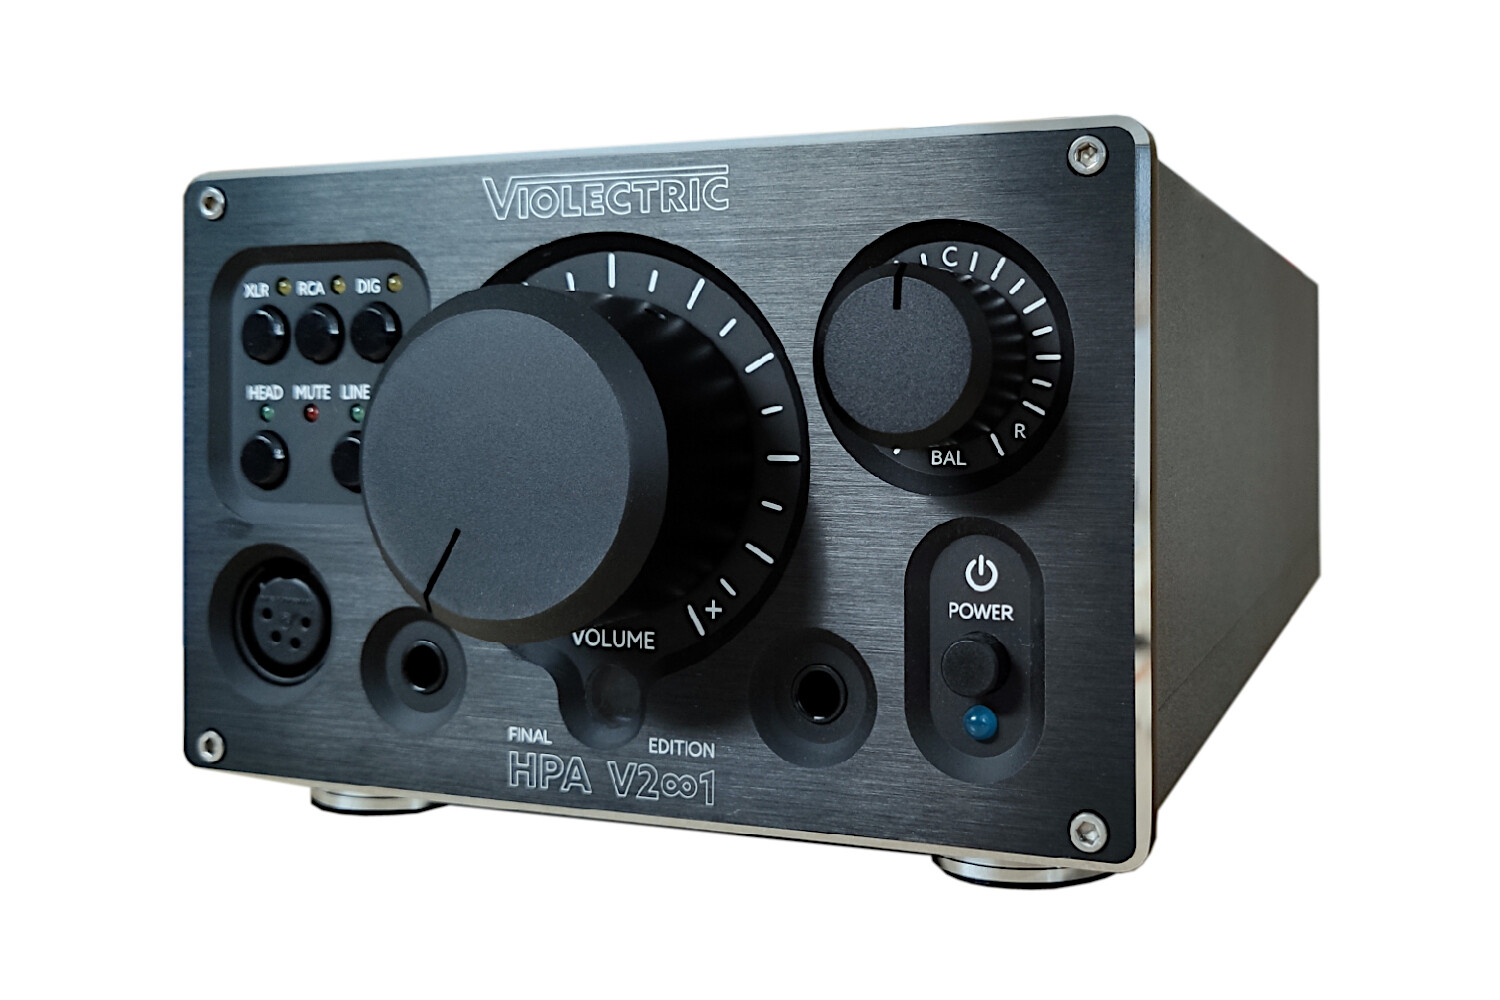 Violectric HPA V281 FE Headphone Amplifier